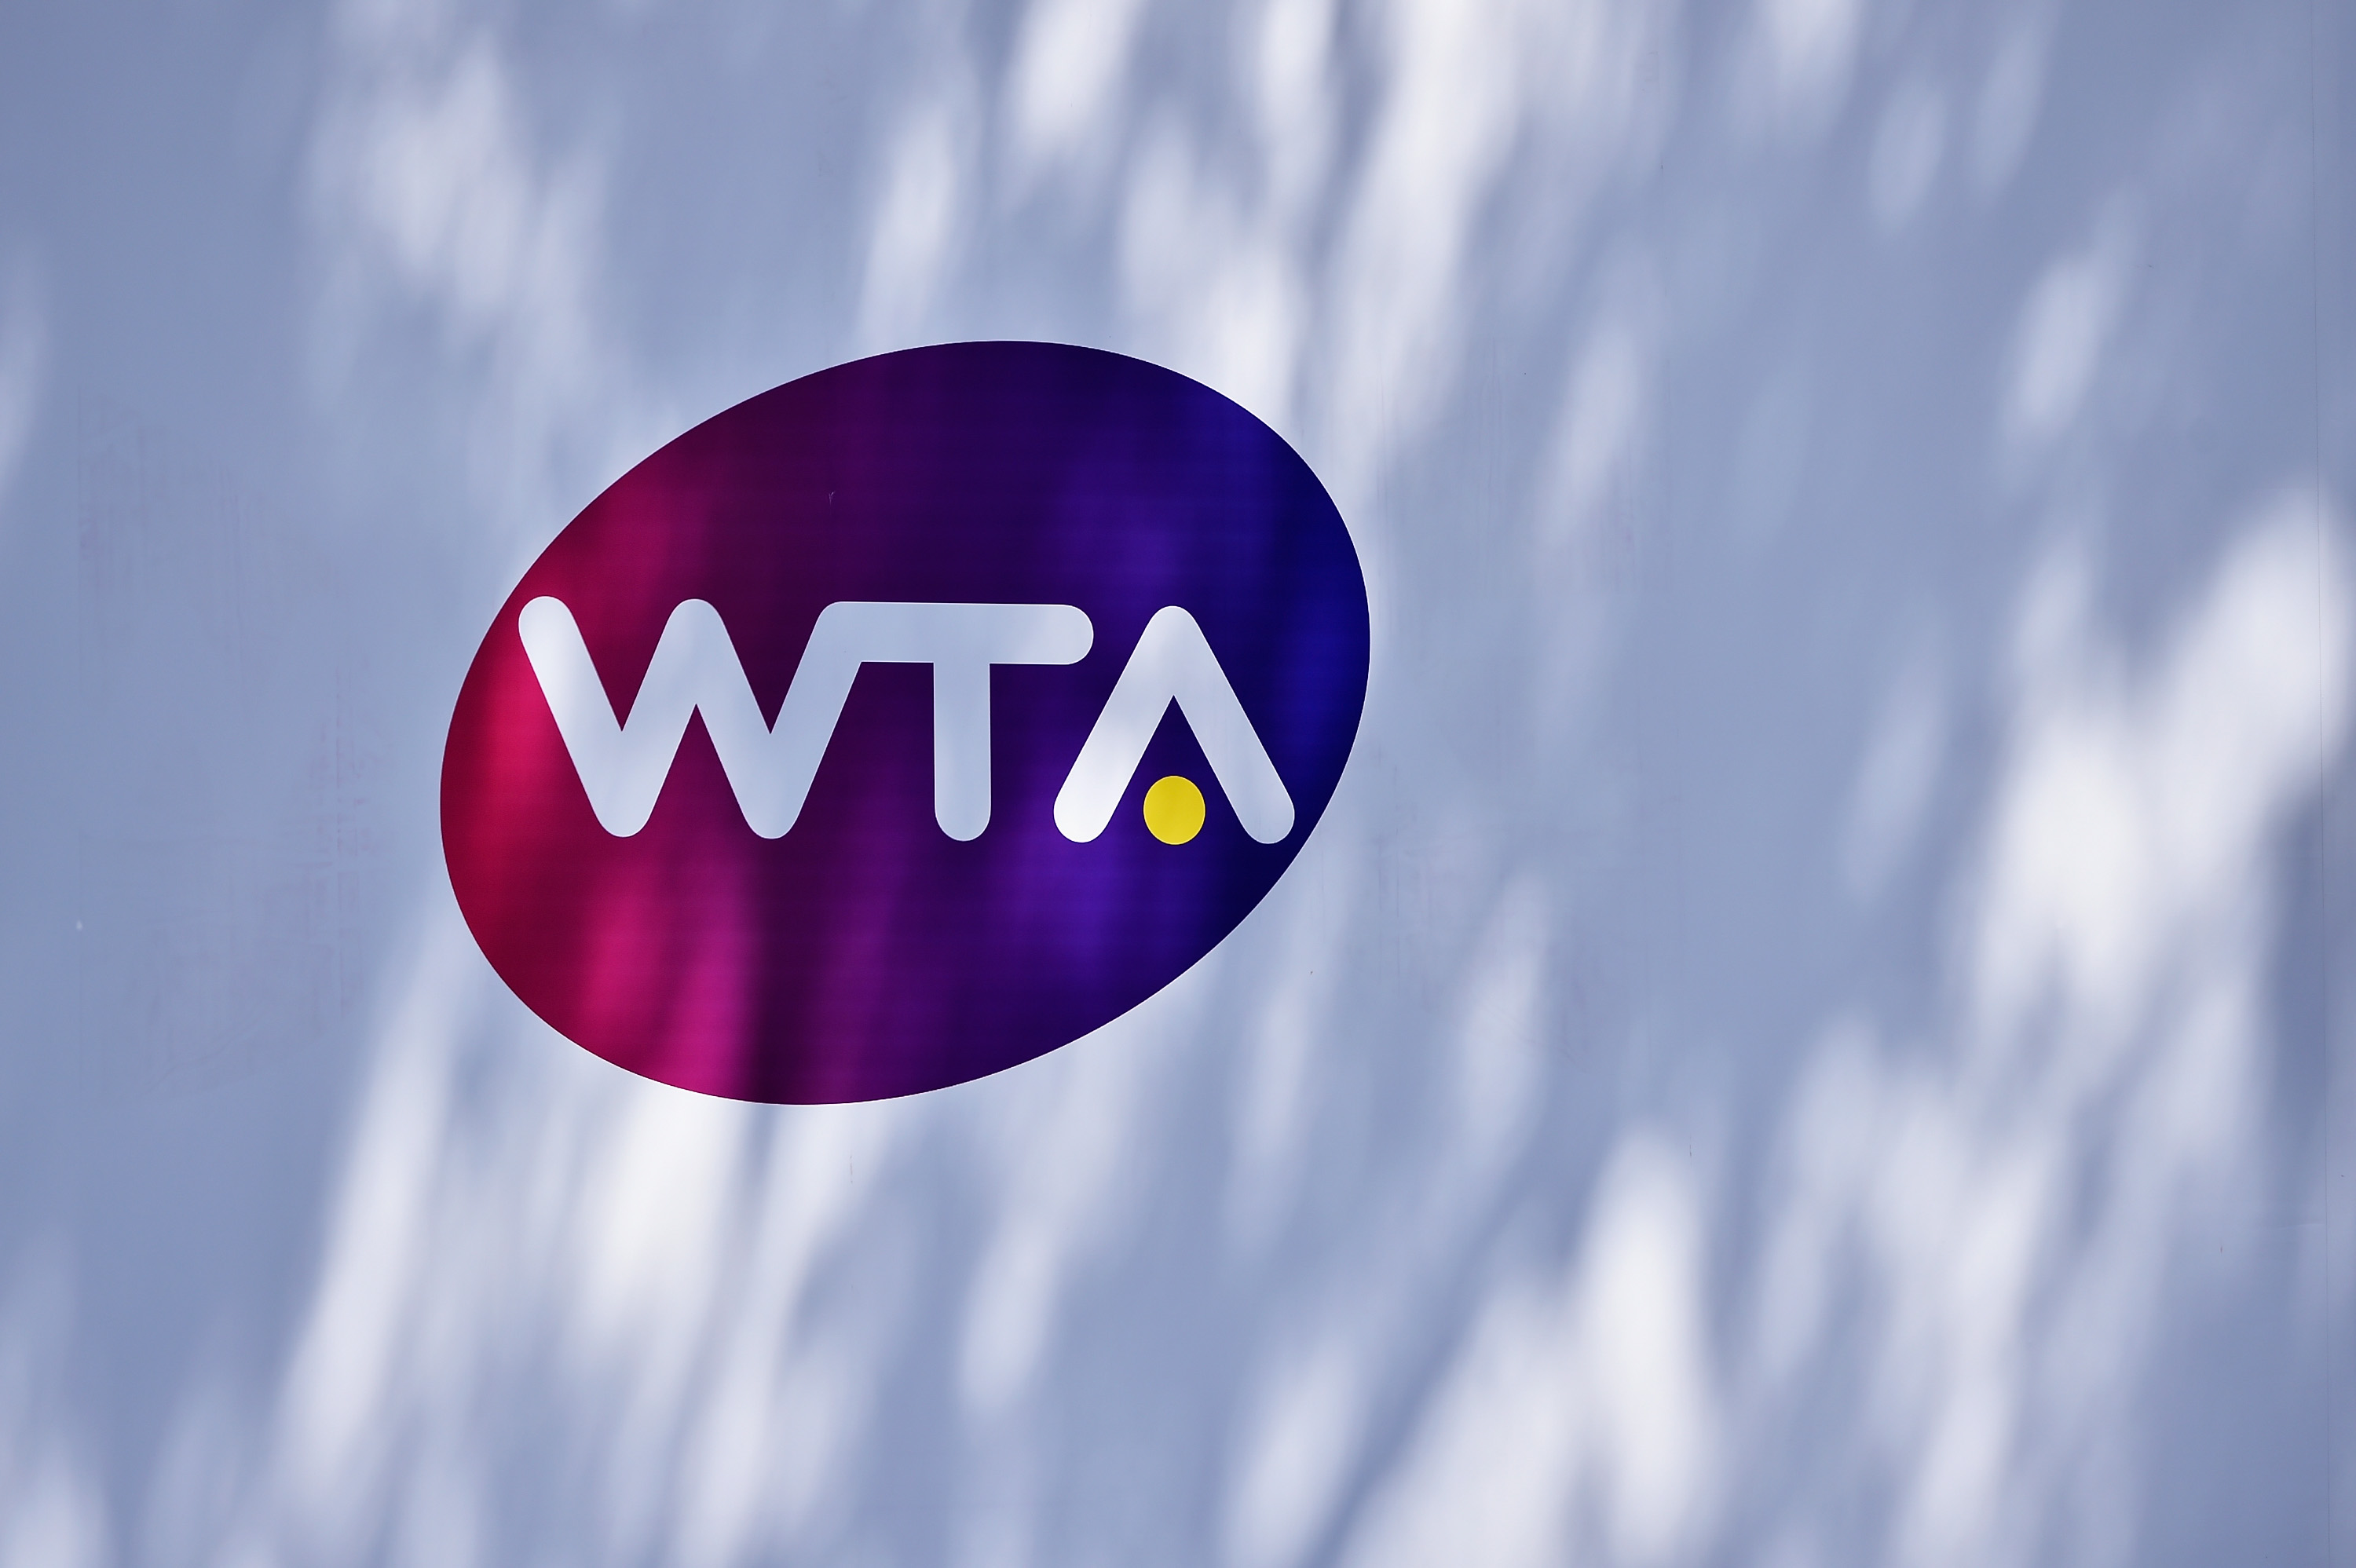 WTA Tour return to go ahead as planned despite player's positive coronavirus test